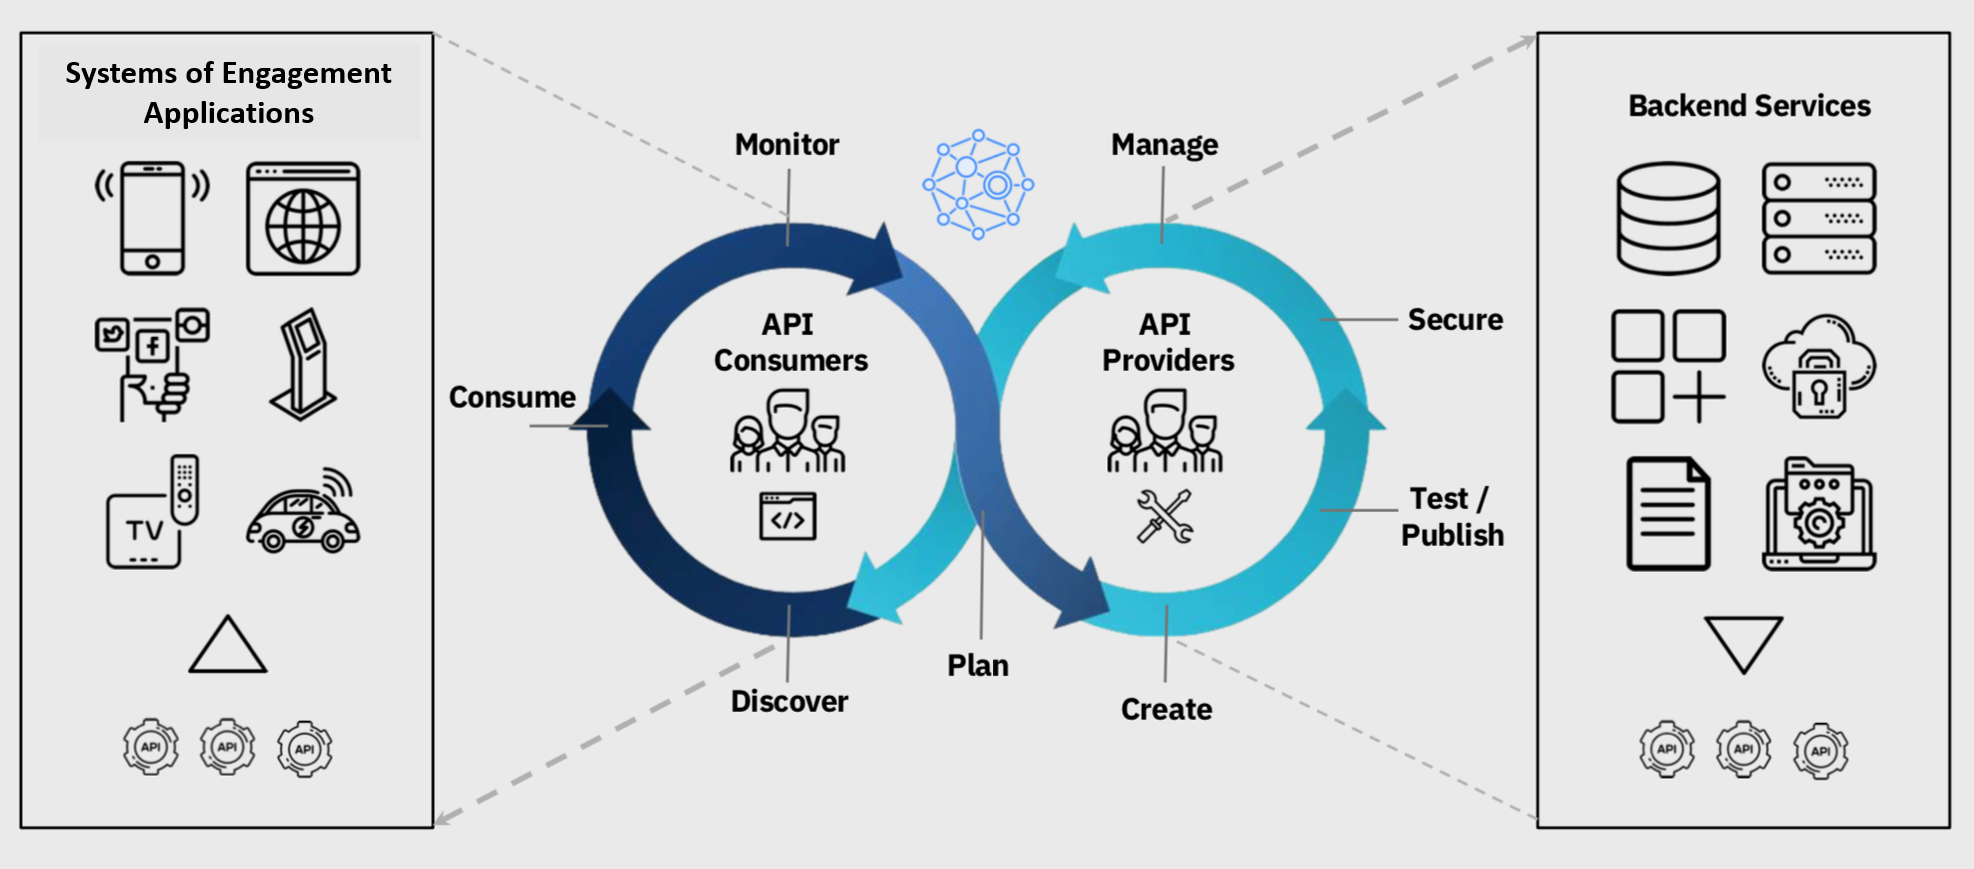 API Lifecycle showing consumers and providers